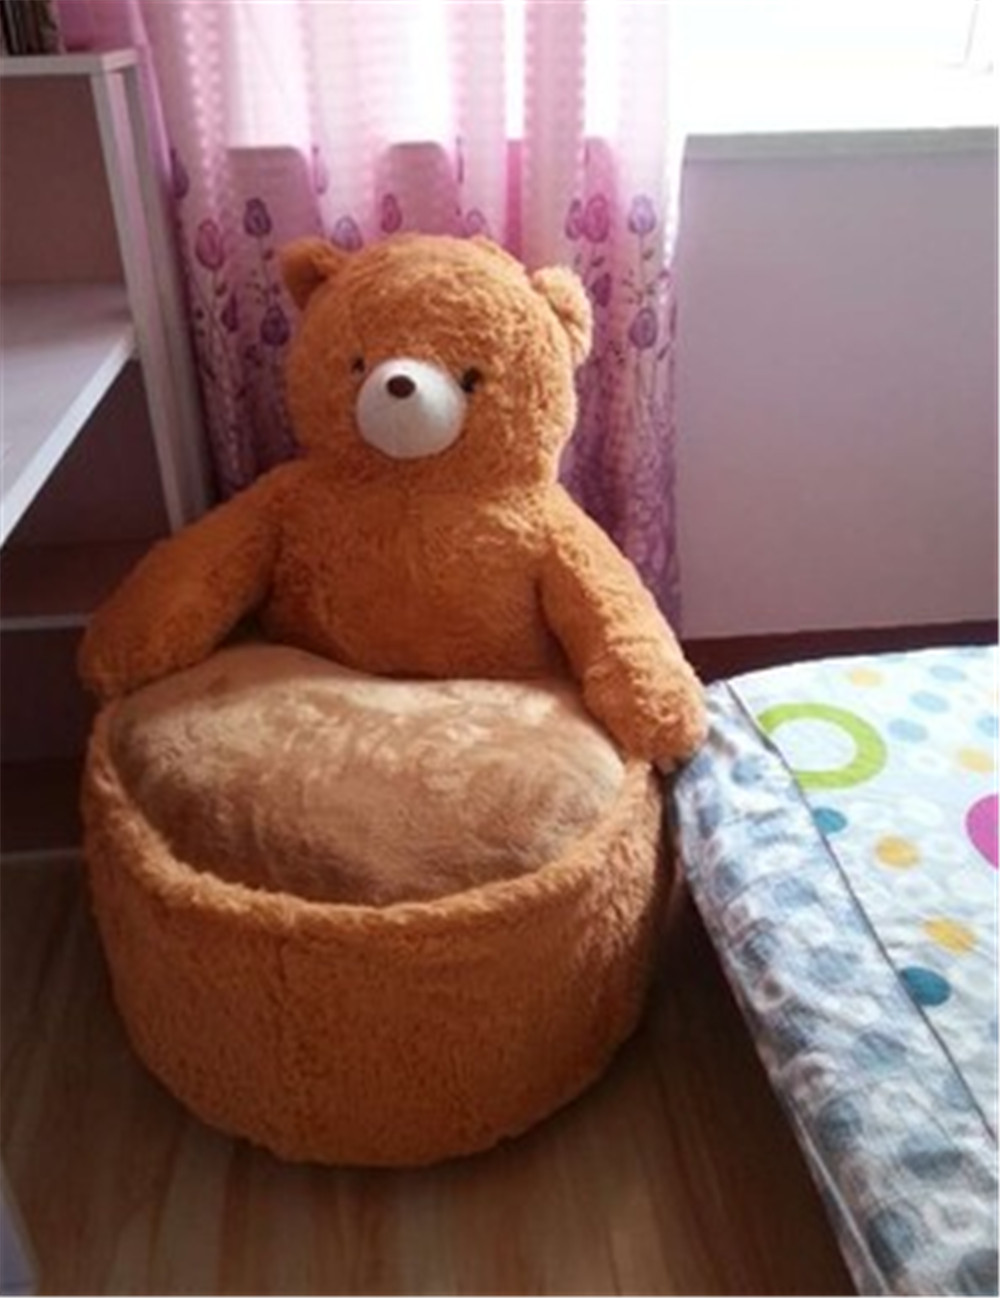 Wondrous Us 72 25 Fancytrader Pop Anime Teddy Bear Chair Toys Huge Stuffed Soft Animals Bears Sofa Cushion For Kids Adults 7 Colors 2 Sizes In Stuffed Interior Design Ideas Inesswwsoteloinfo